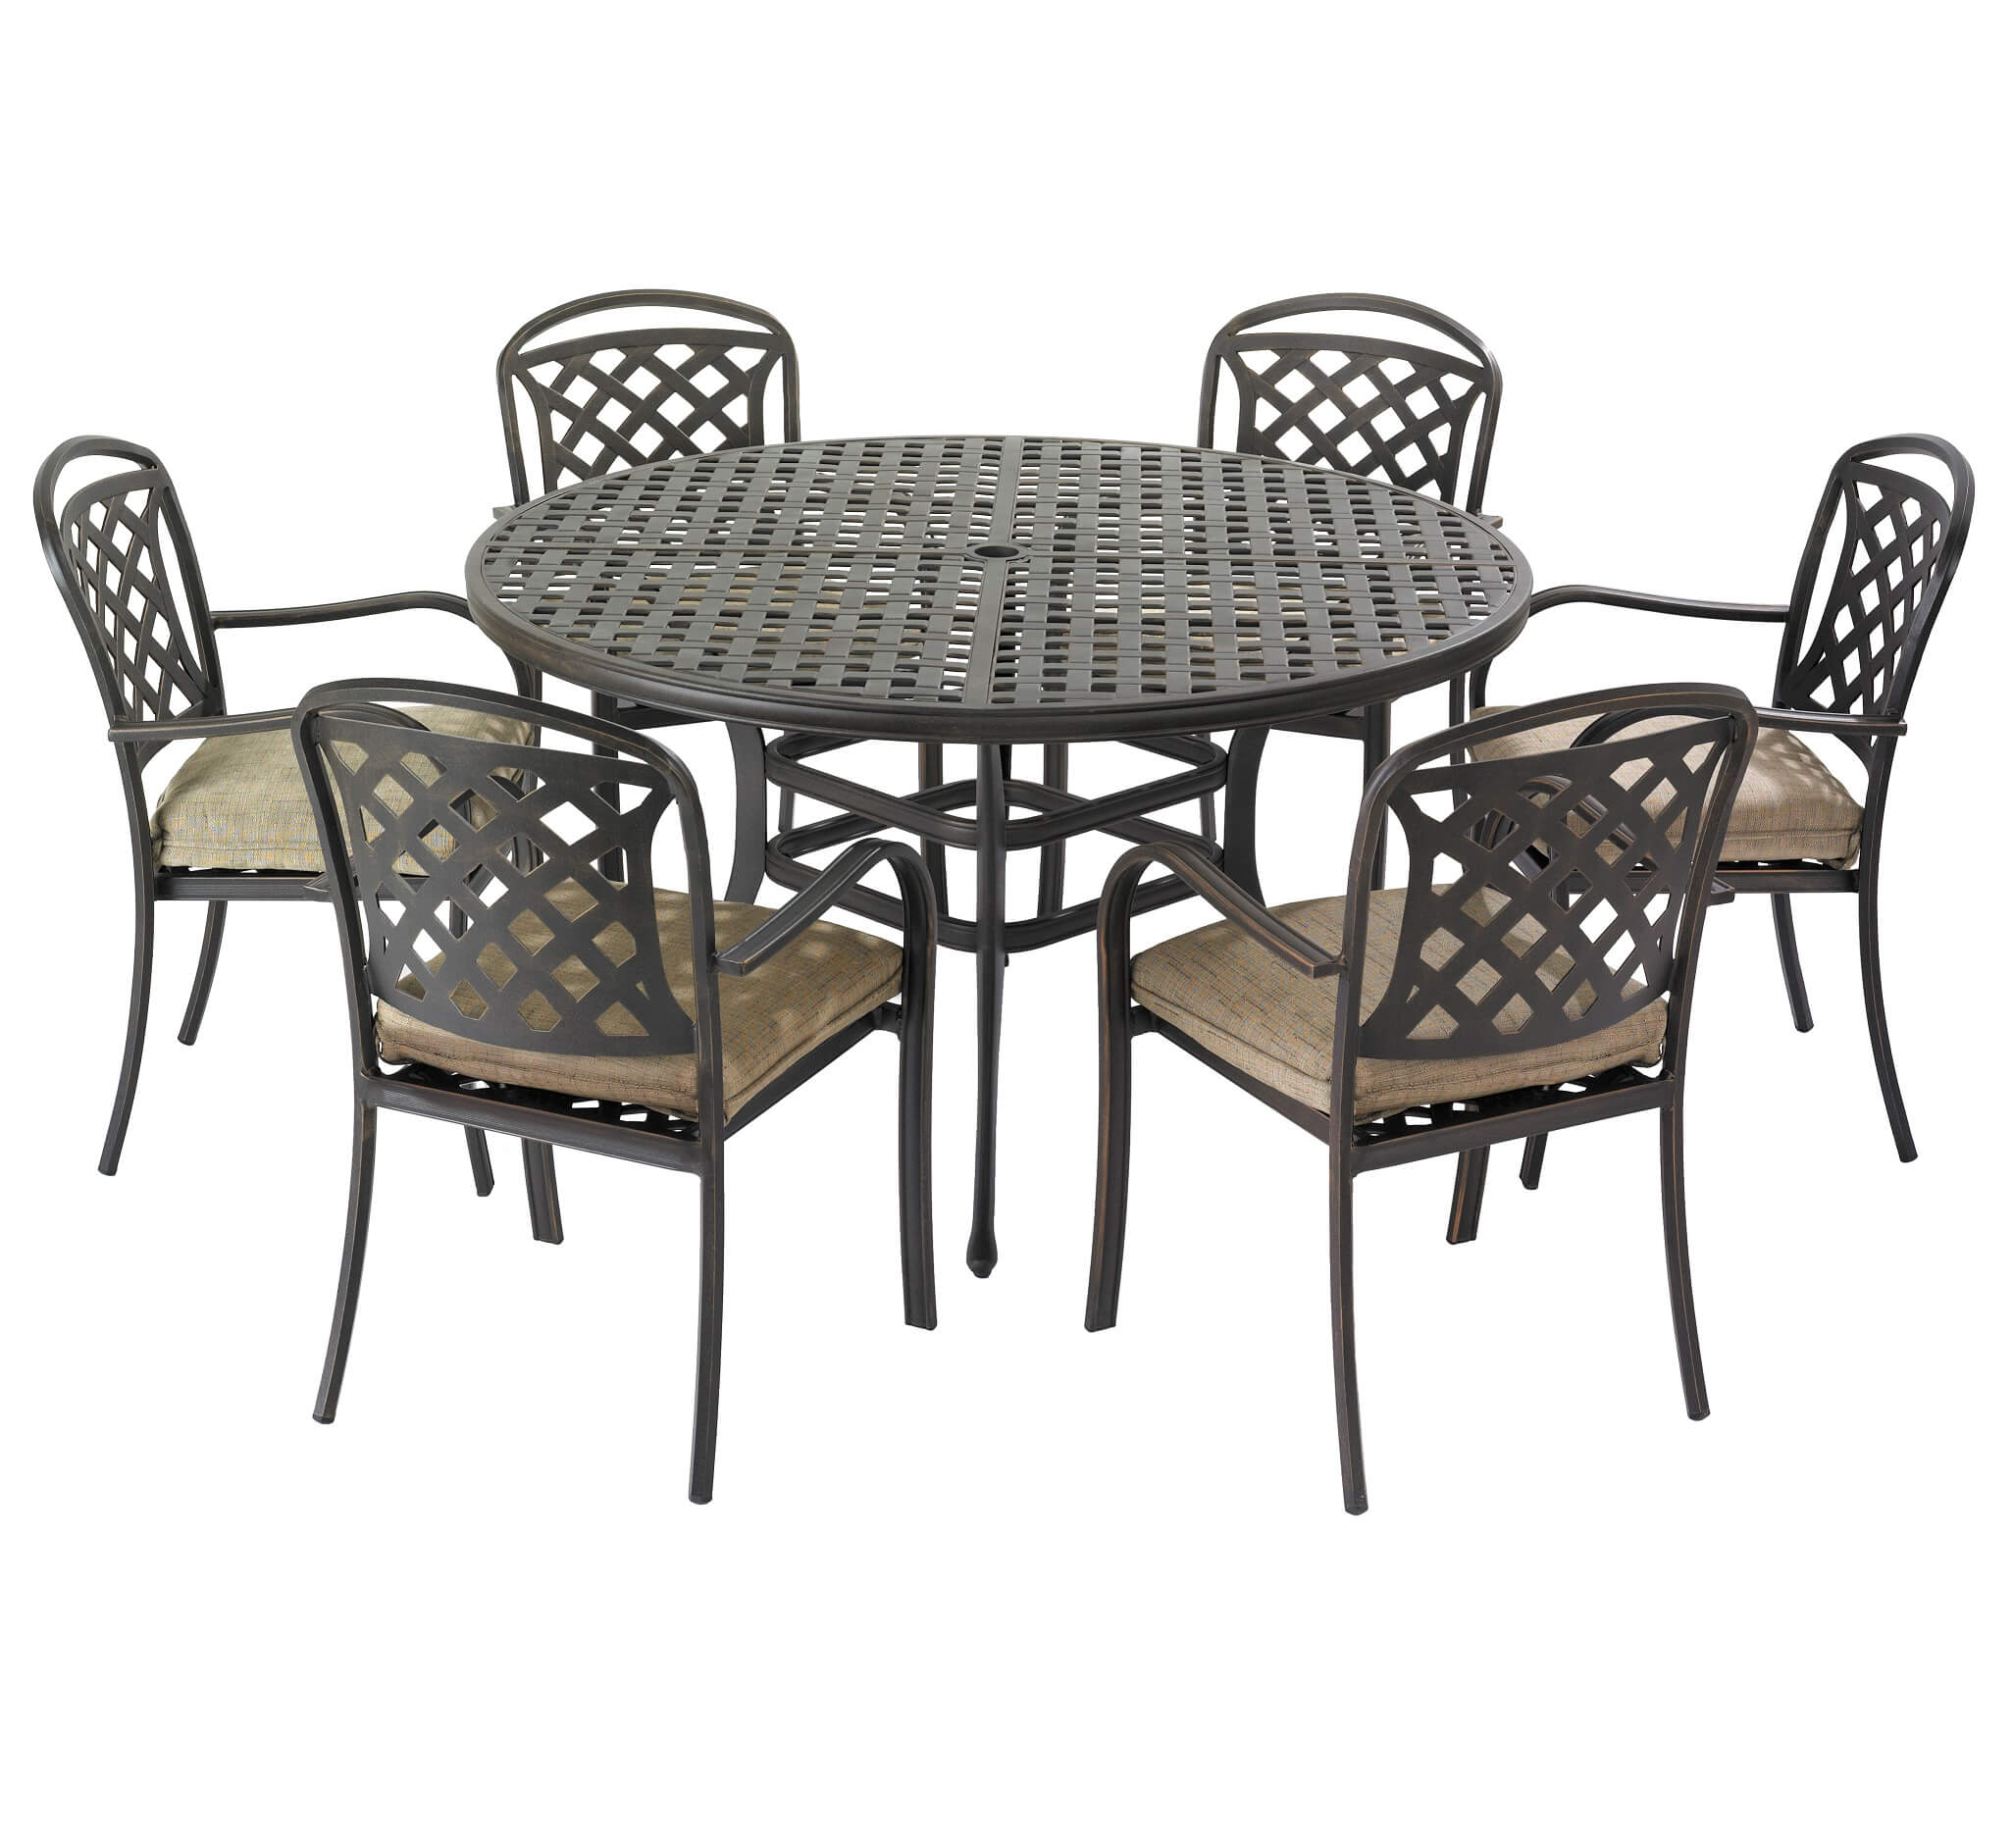 Hartman Berkeley 6 Seater Garden Furniture Set + FREE Cushions, Parasol and Base